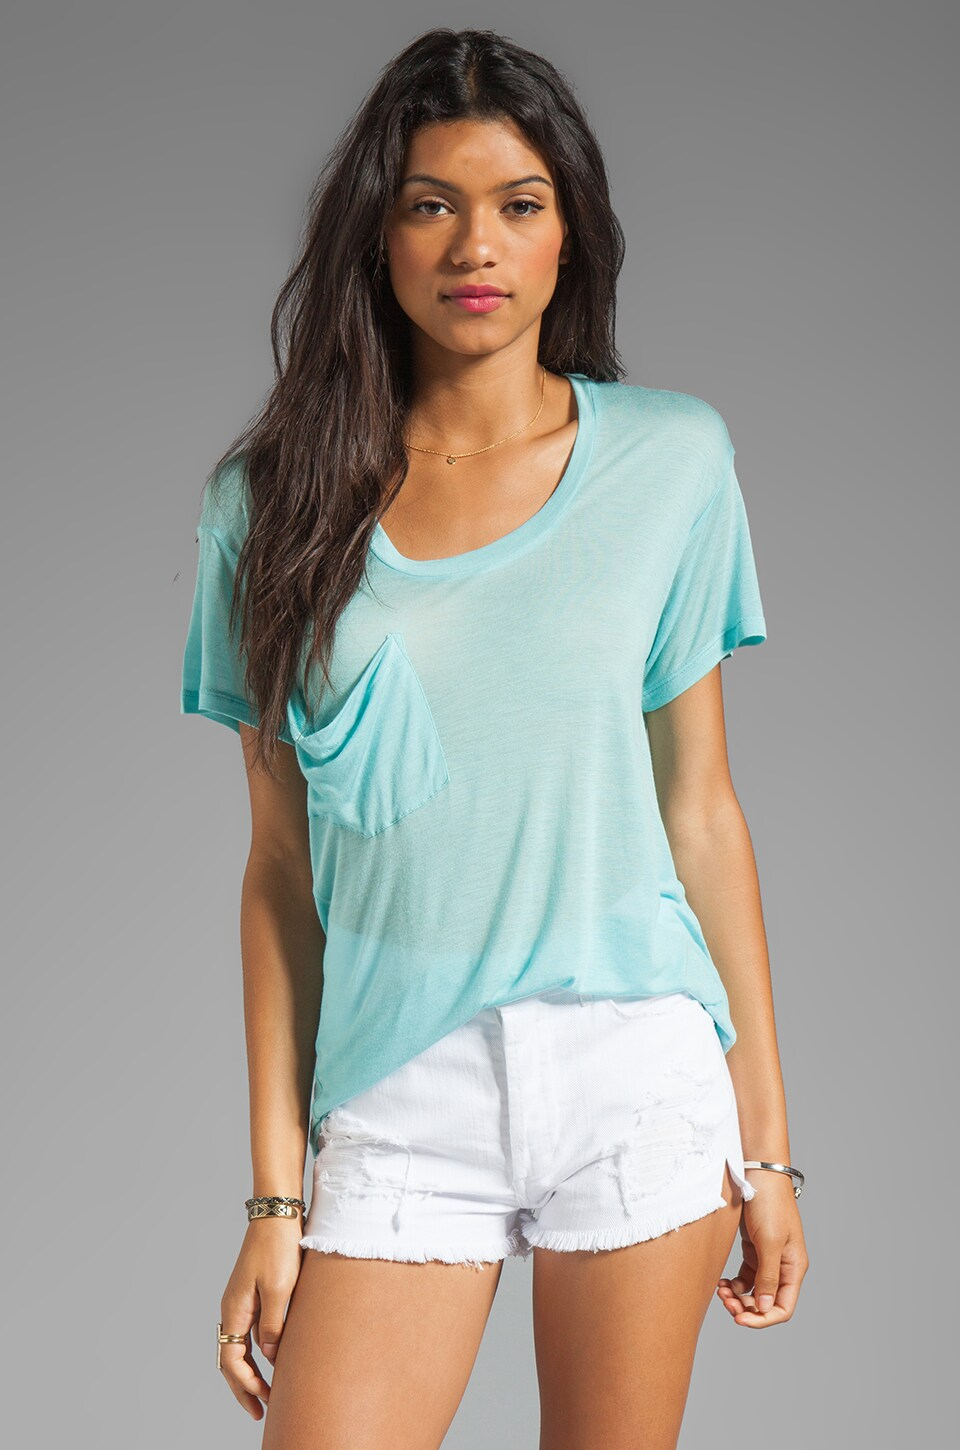 Kain Sheer Jersey Classic Pocket Tee in Turquoise